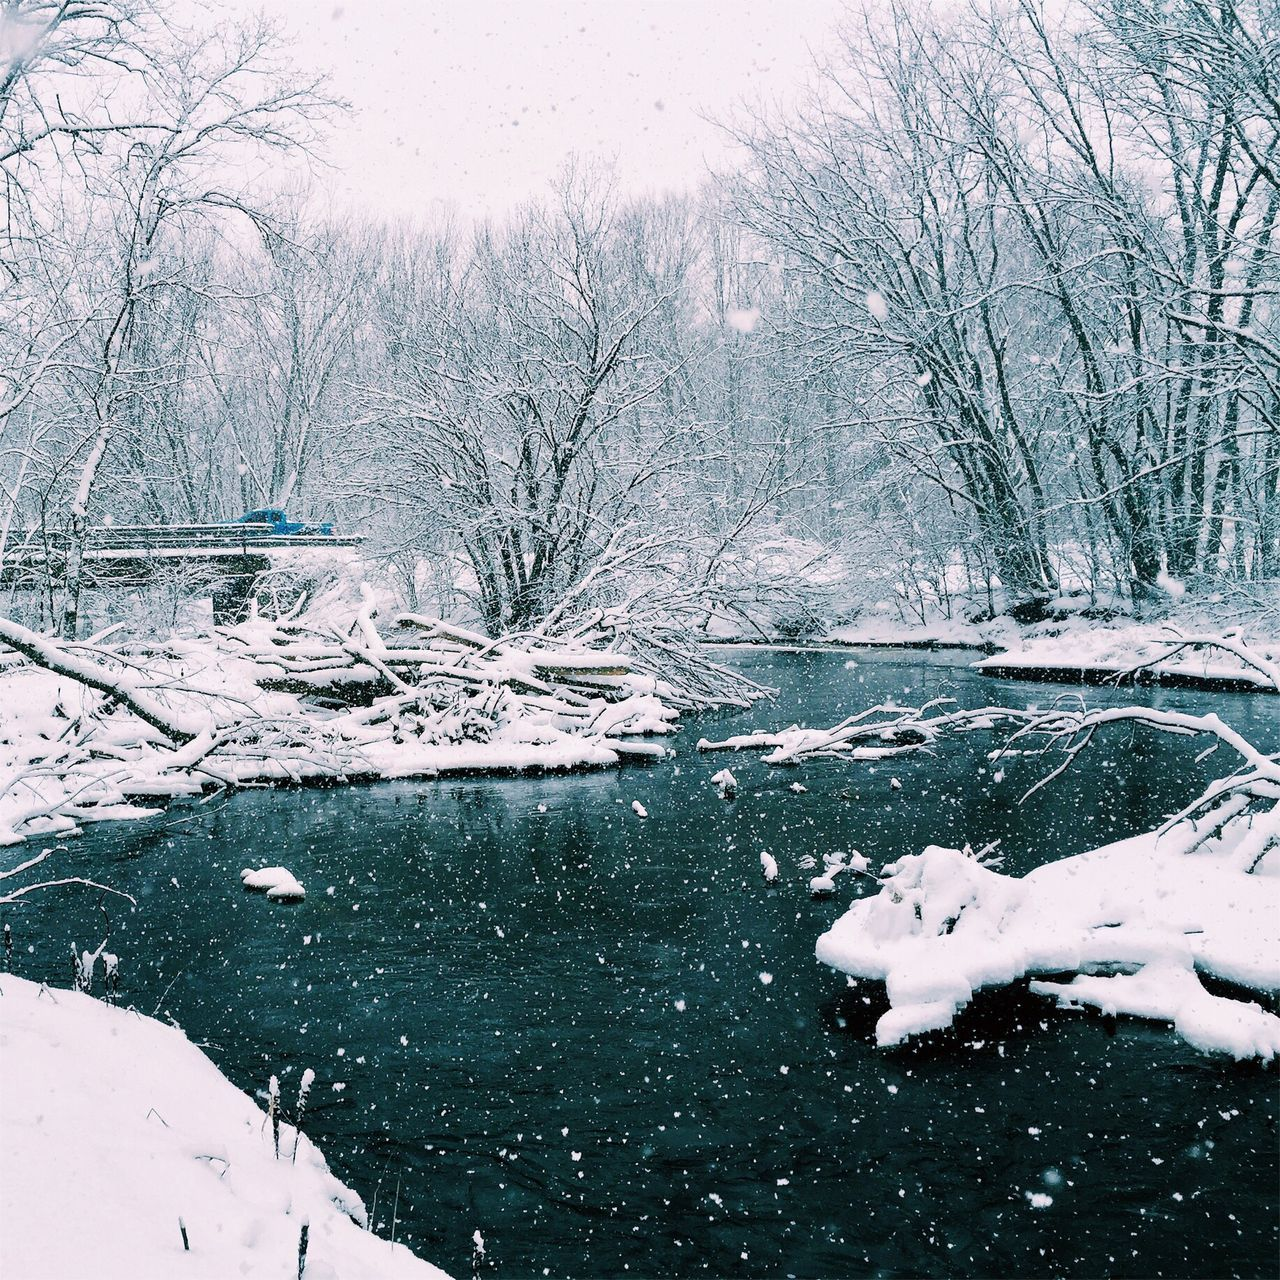 Jackson Creek Winter Taking Photos Countryside Landscape Nature Water Snow